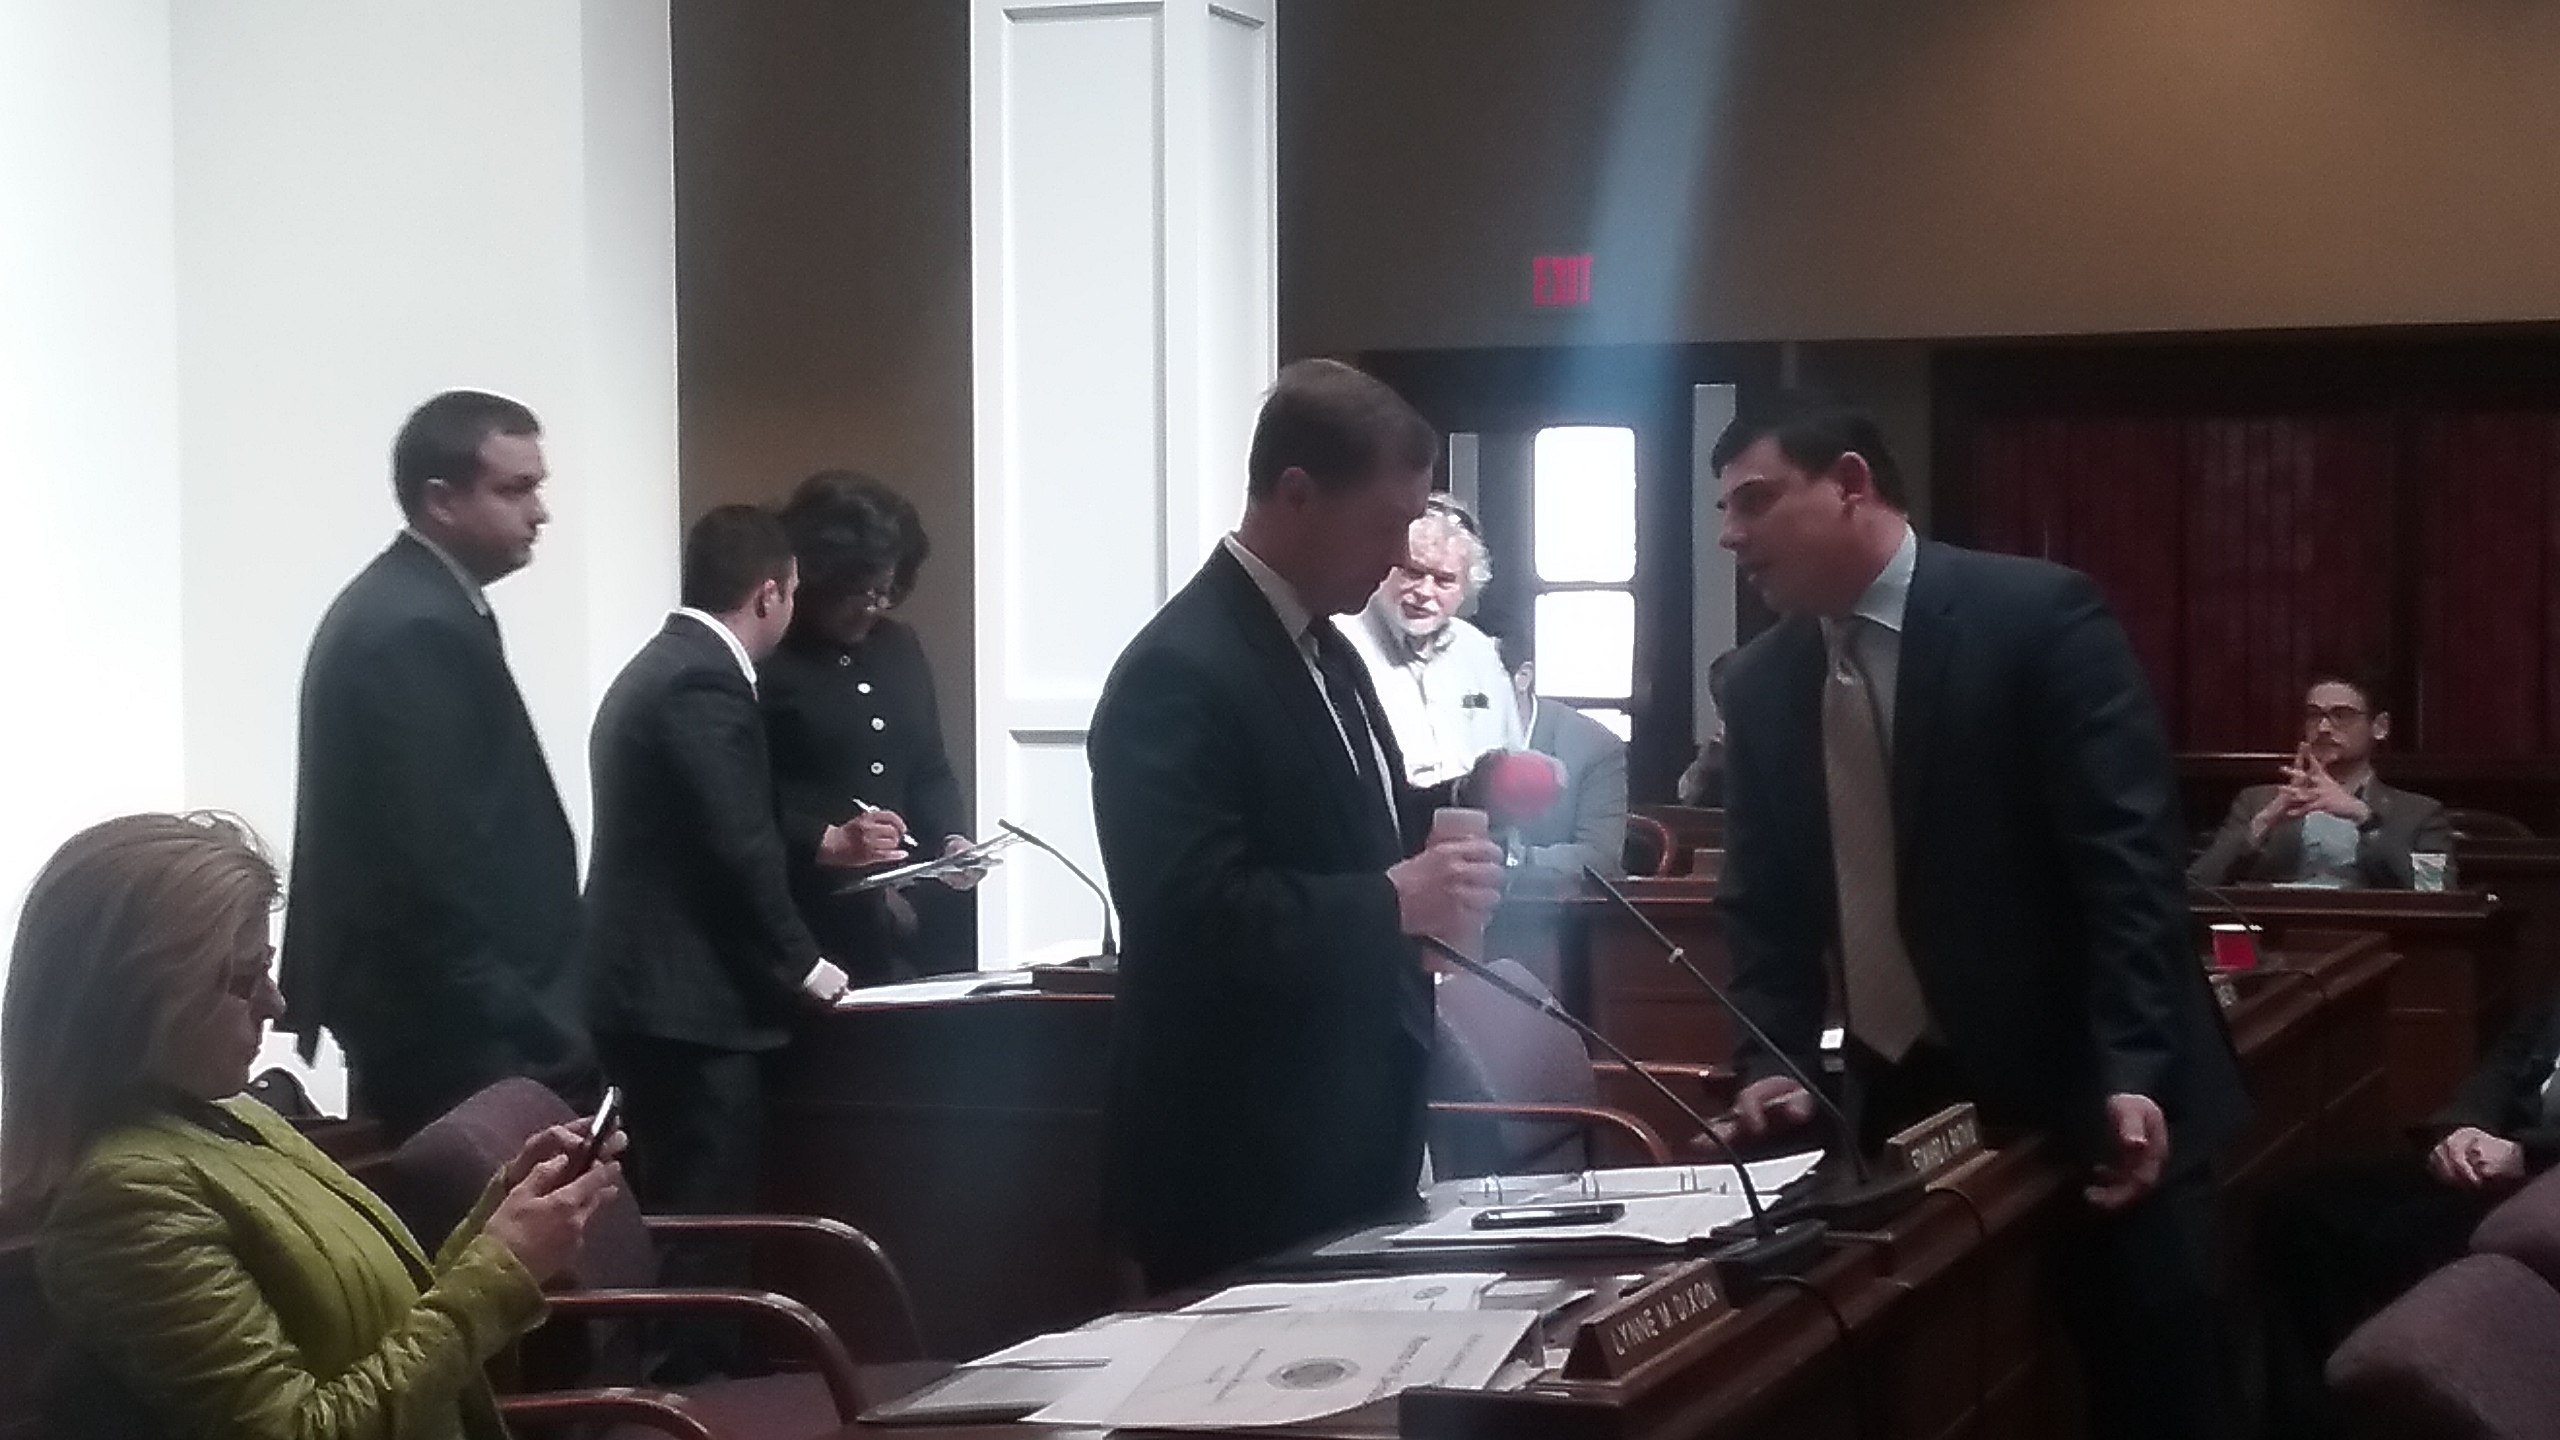 Legislators meet and confer at a recess to discuss amendments to a borrowing deal for ECMC. (Sandra Tan/Buffalo News)